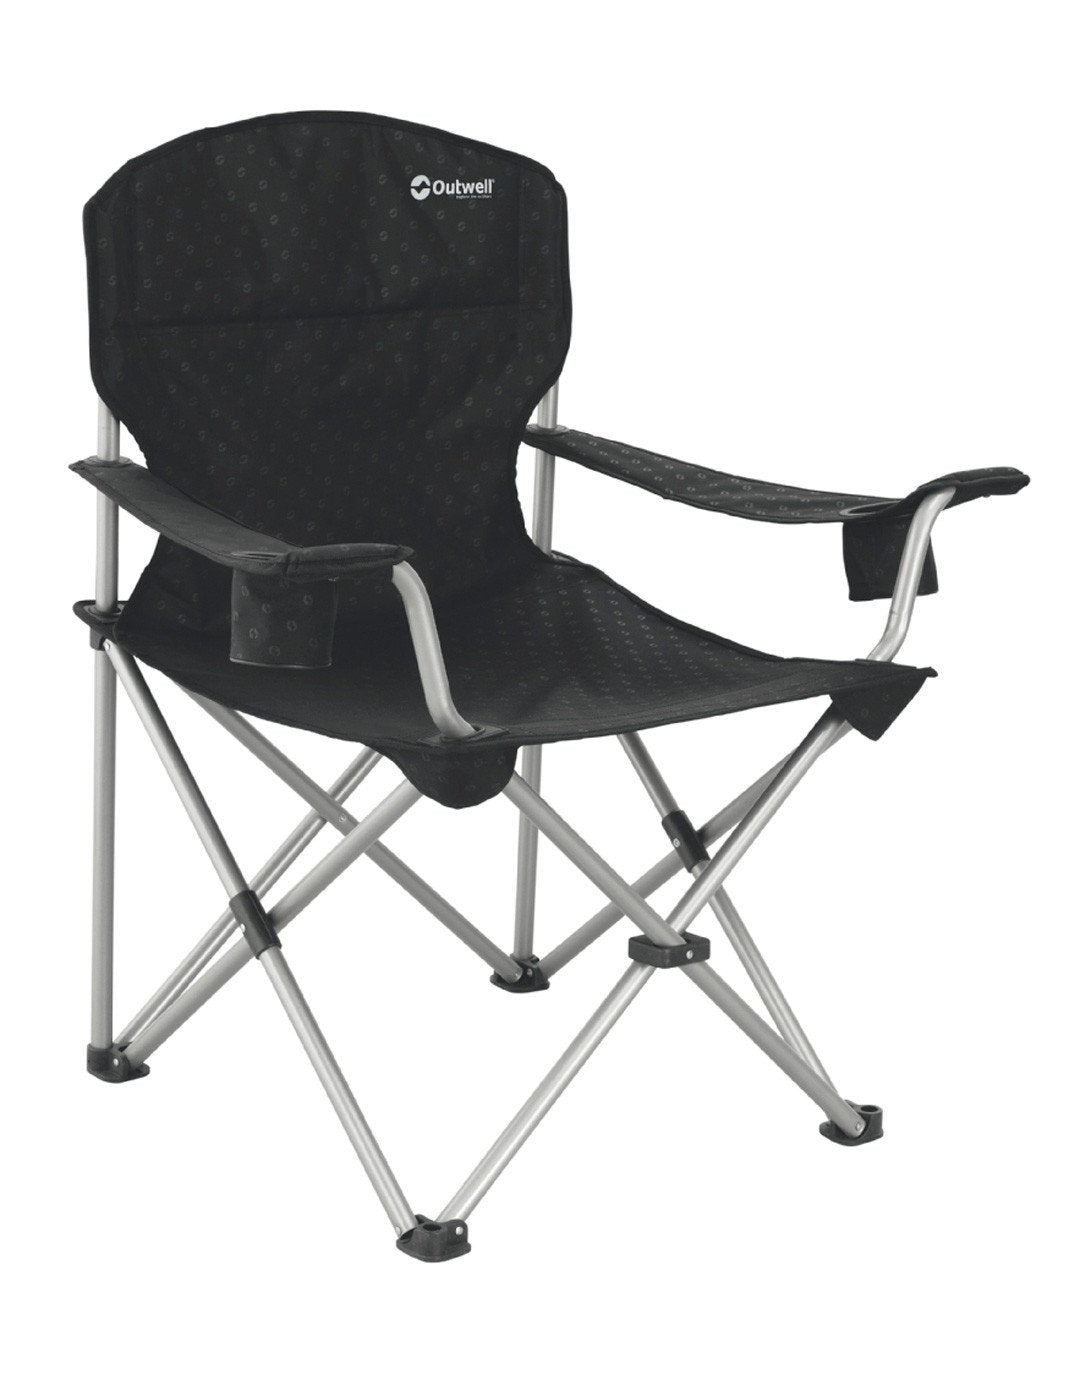 Image of Outwell Catamarca Arm Chair XL - Black